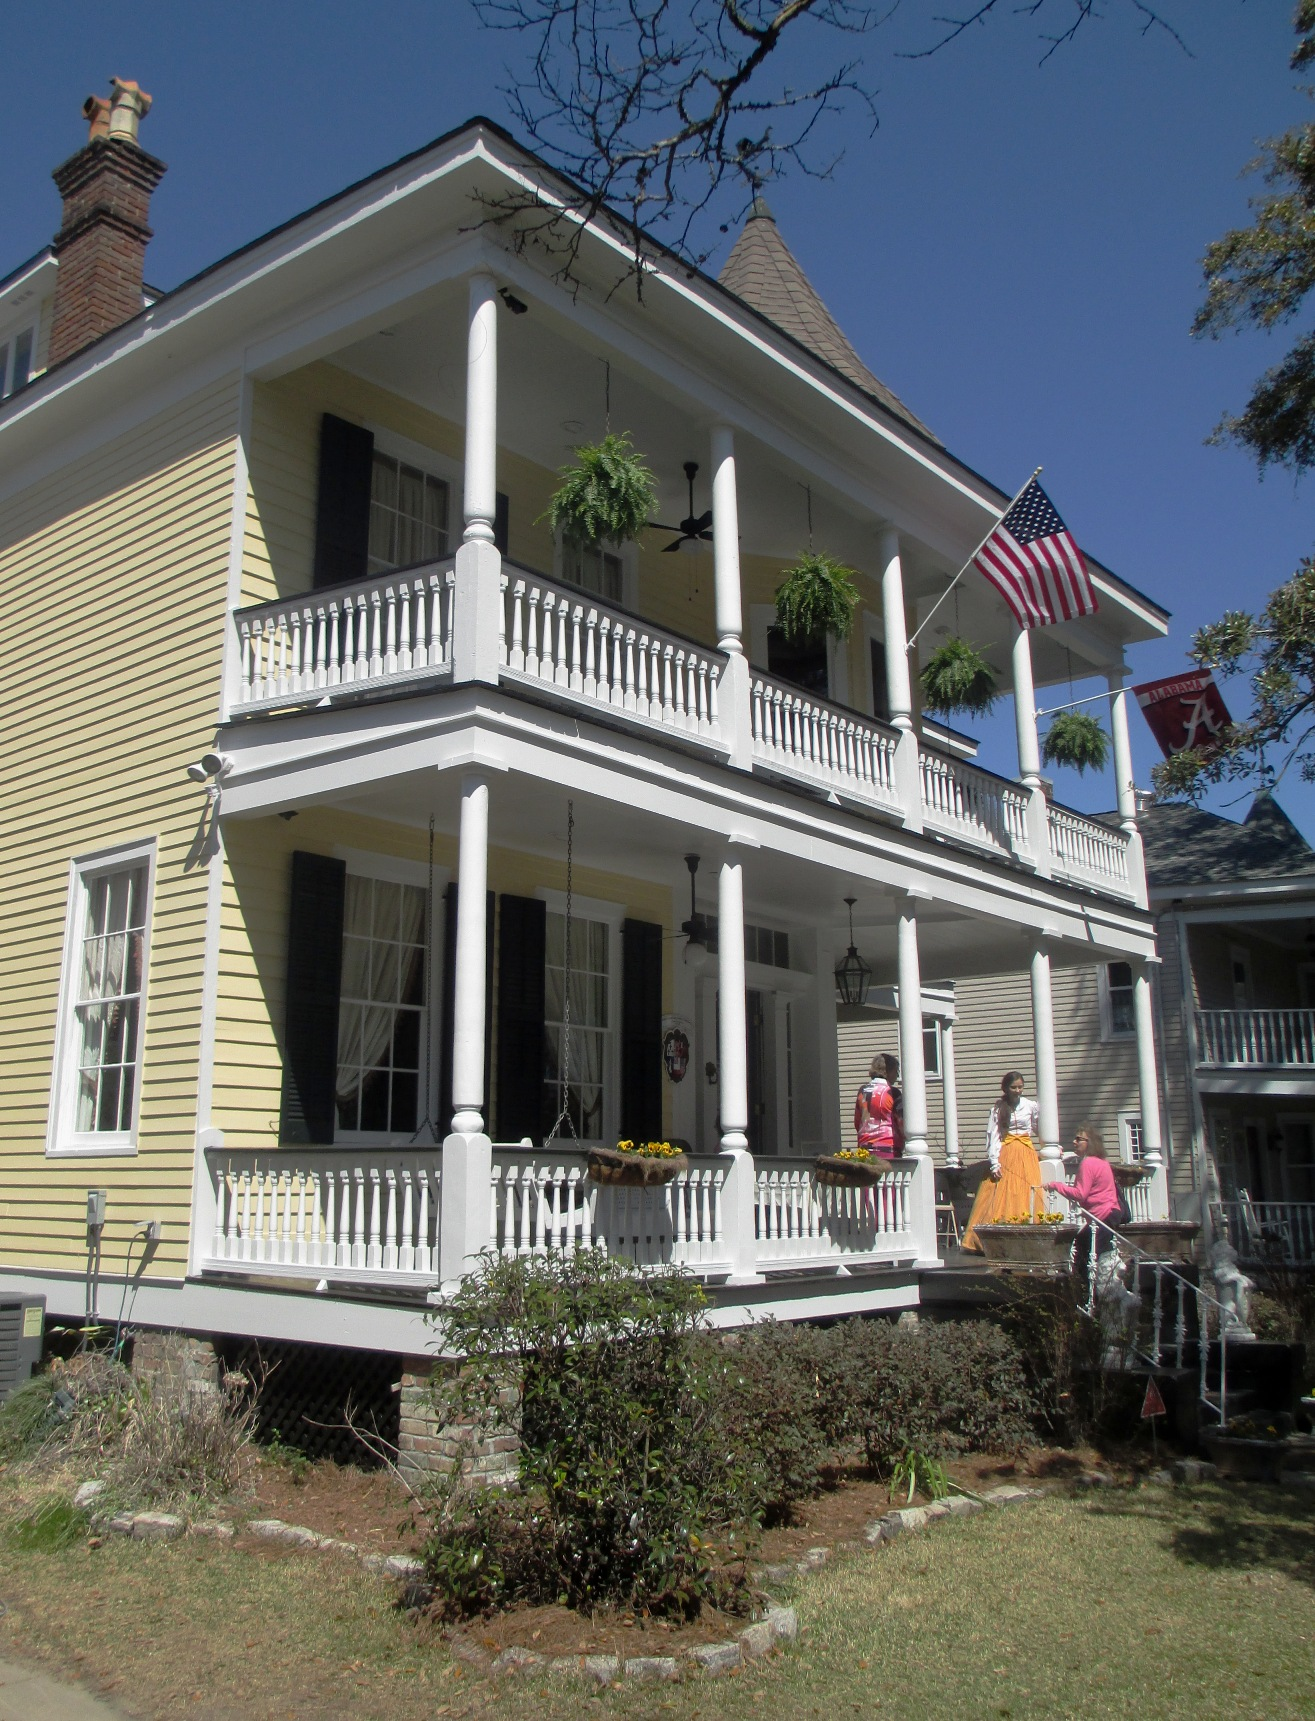 Mobile alabama home tour 2014 historic house colors for Home builders alabama